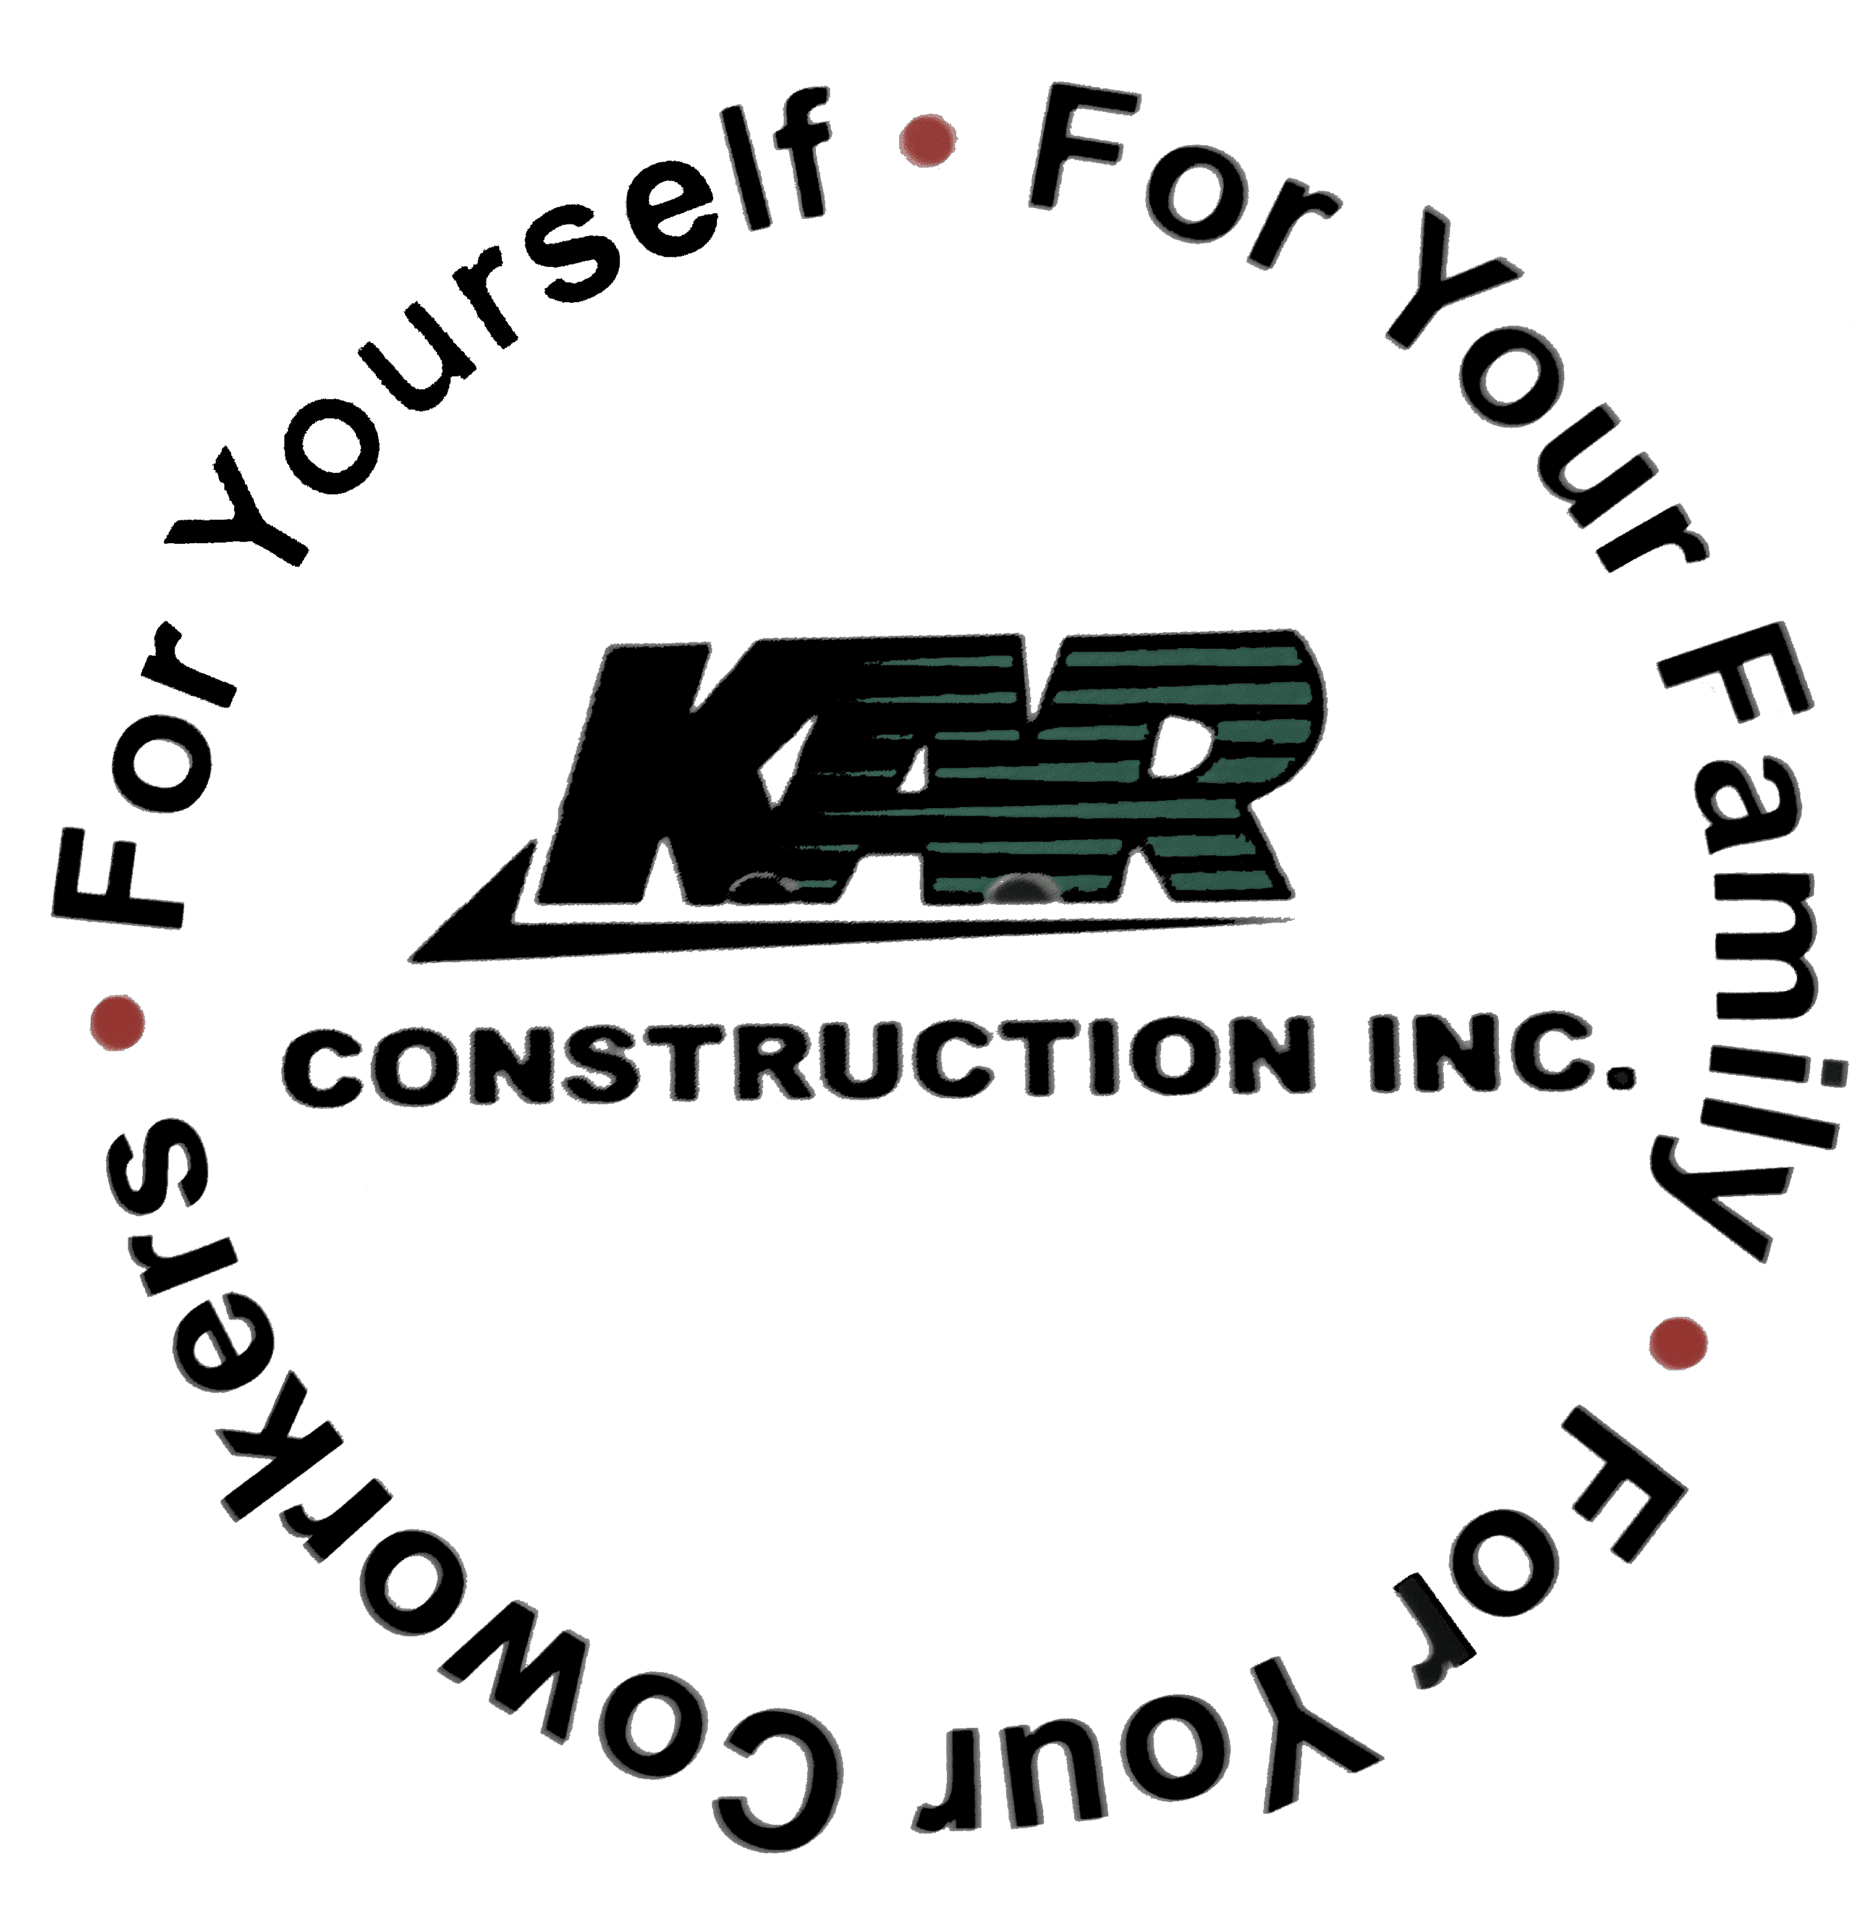 KAR Construction Inc